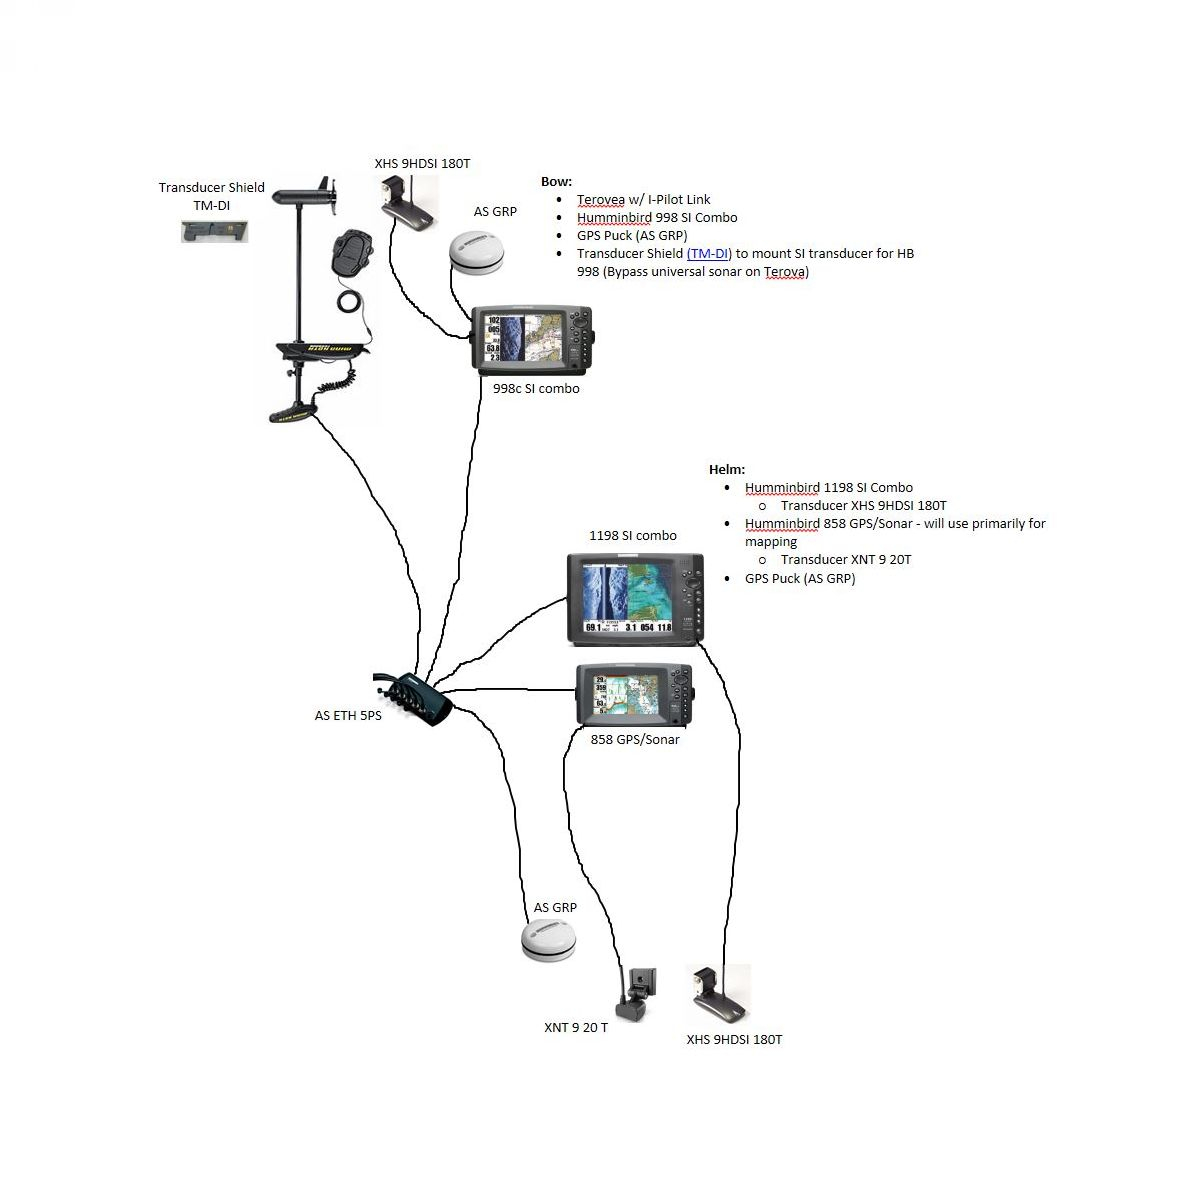 Quickbook Network Wiring Diagram